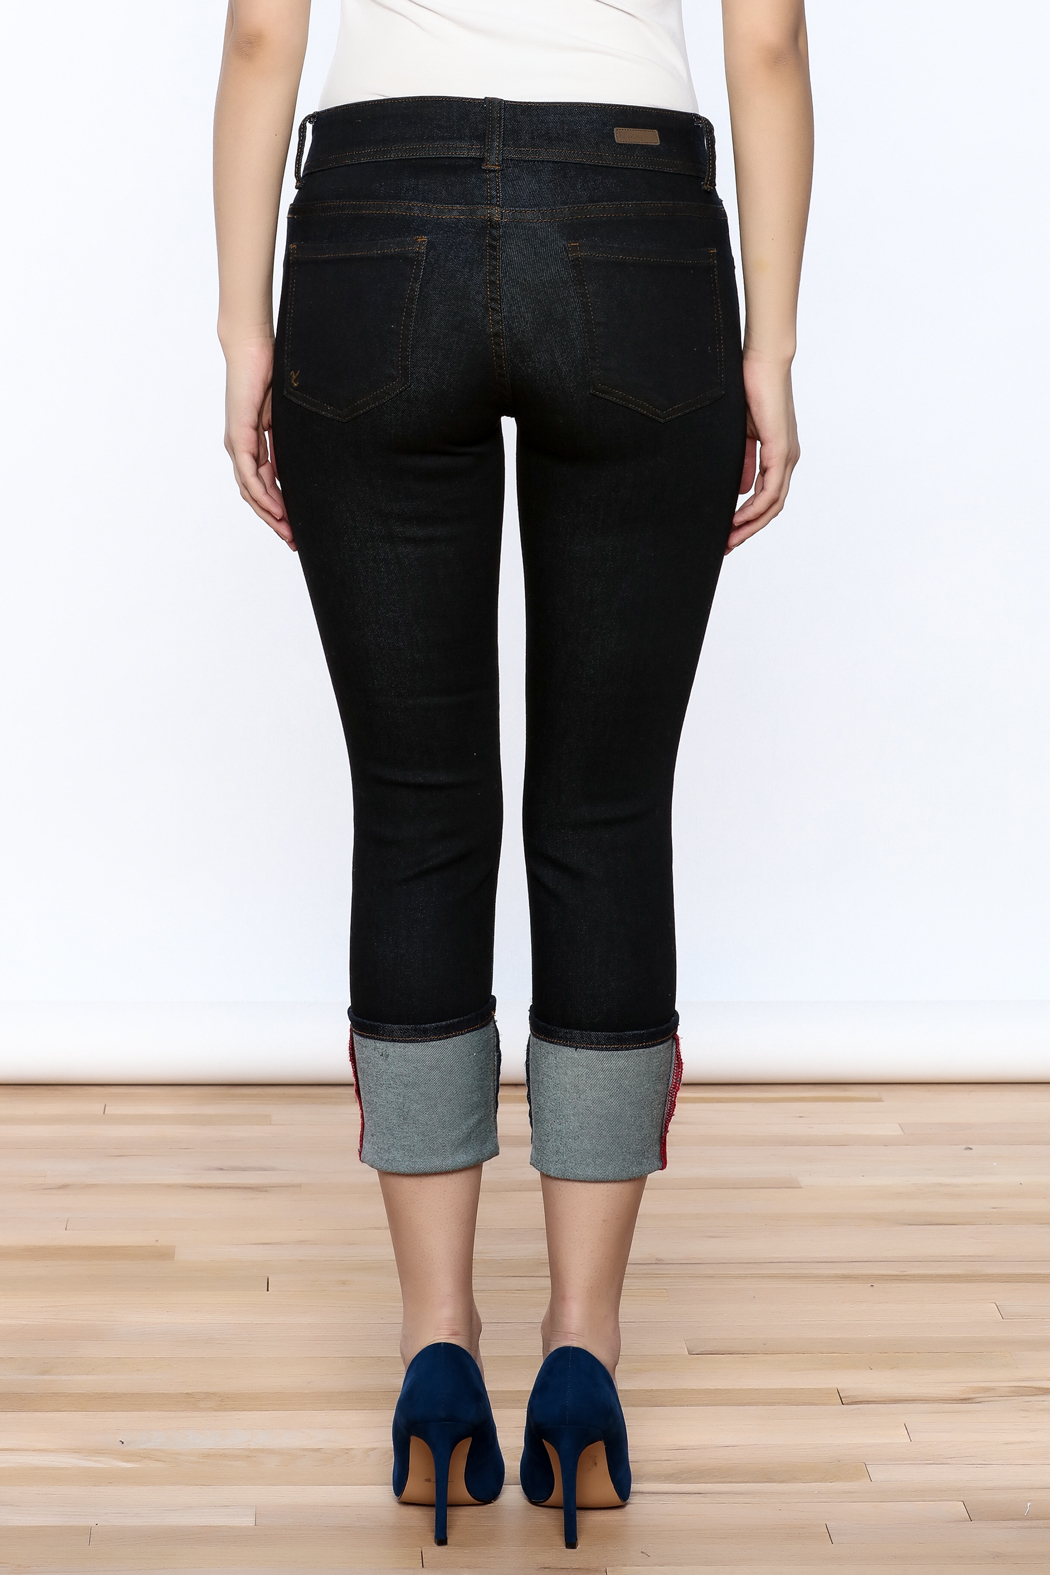 Kut from the Kloth Cameron Skinny Jeans - Back Cropped Image